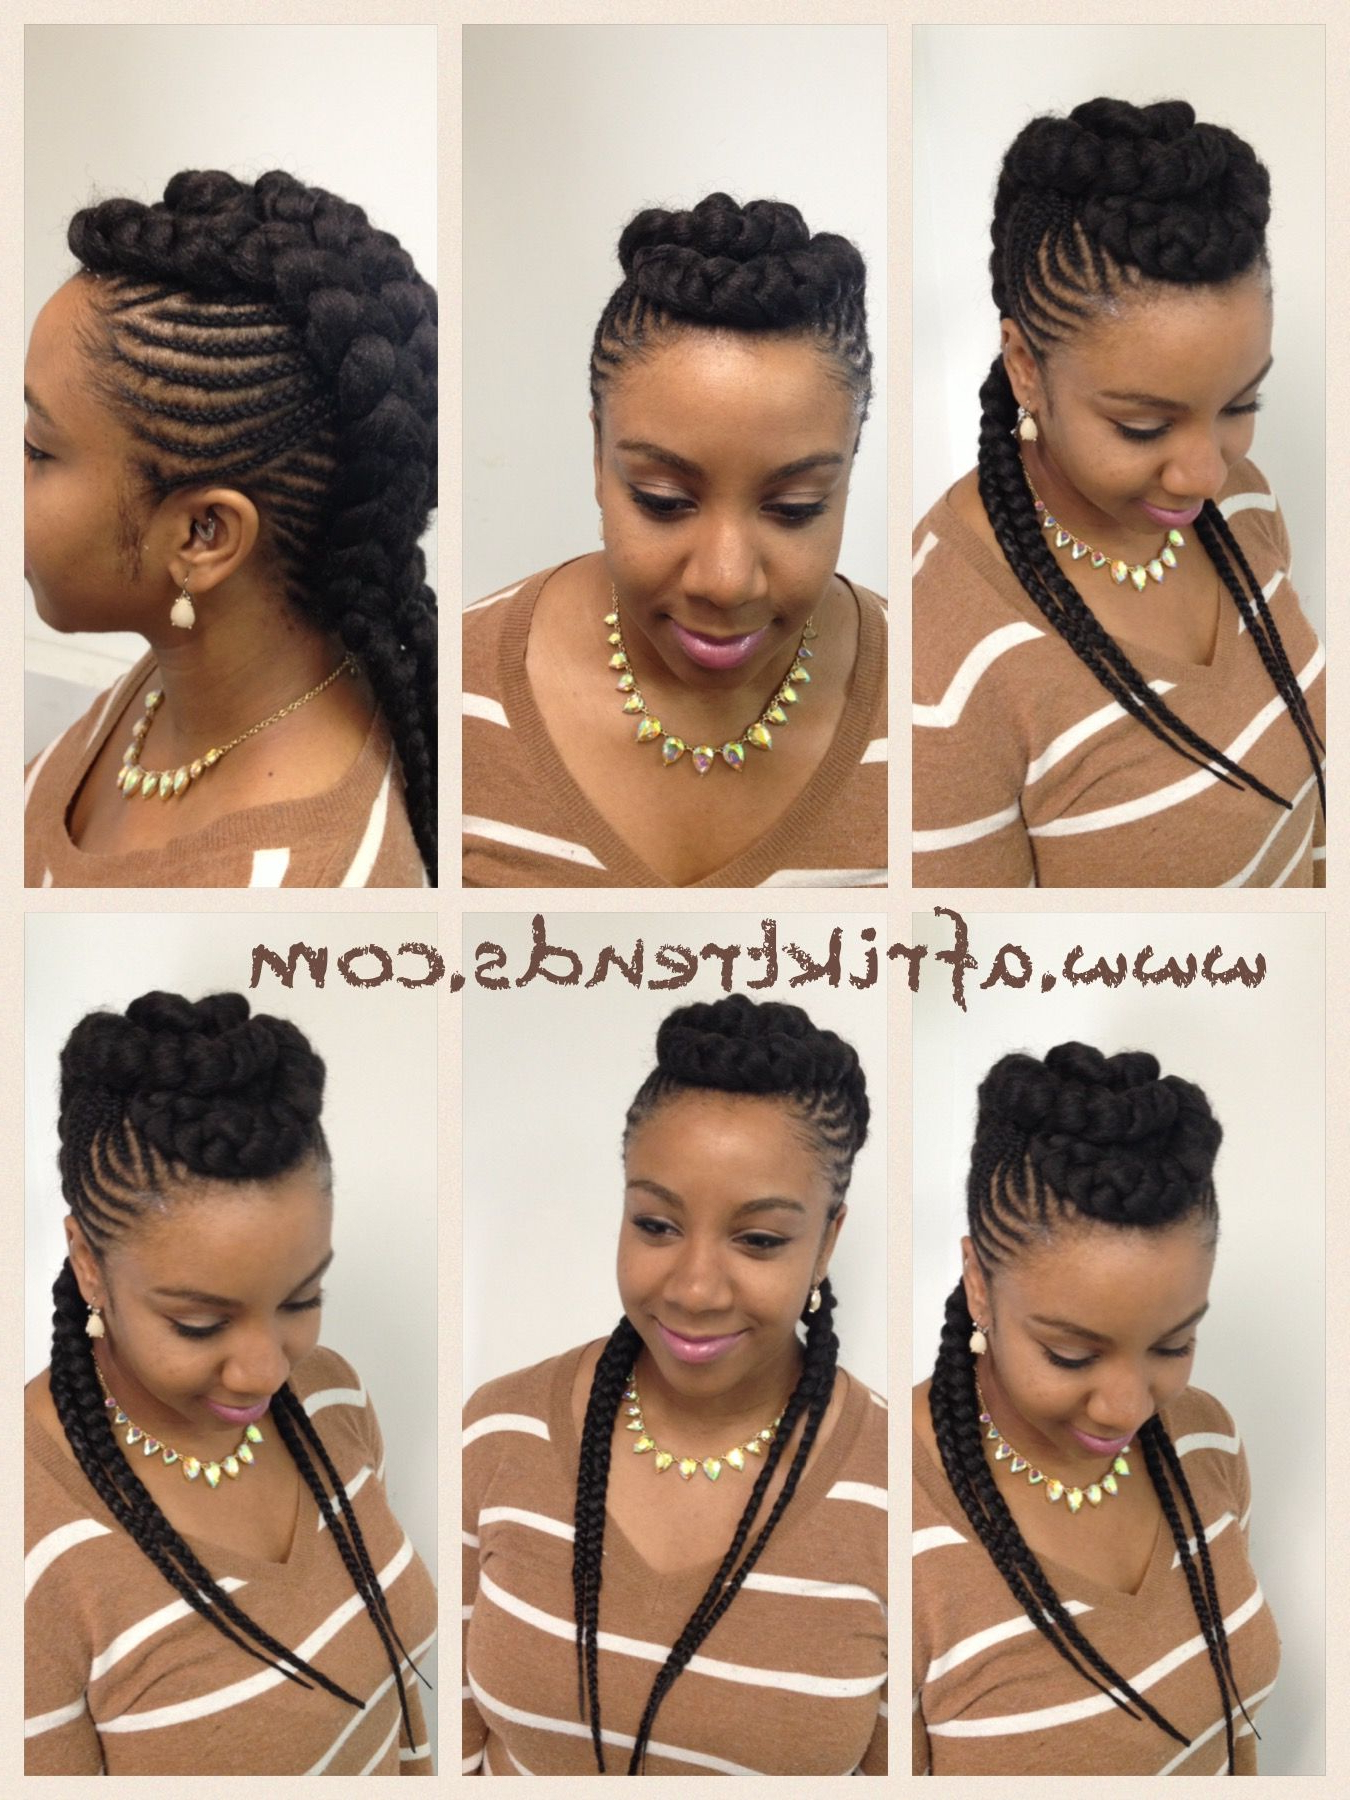 Well Liked Divine Mohawk Like Updo Hairstyles With Princess Crown Braid: One Of The Best Updated Version For Teenage (View 20 of 20)